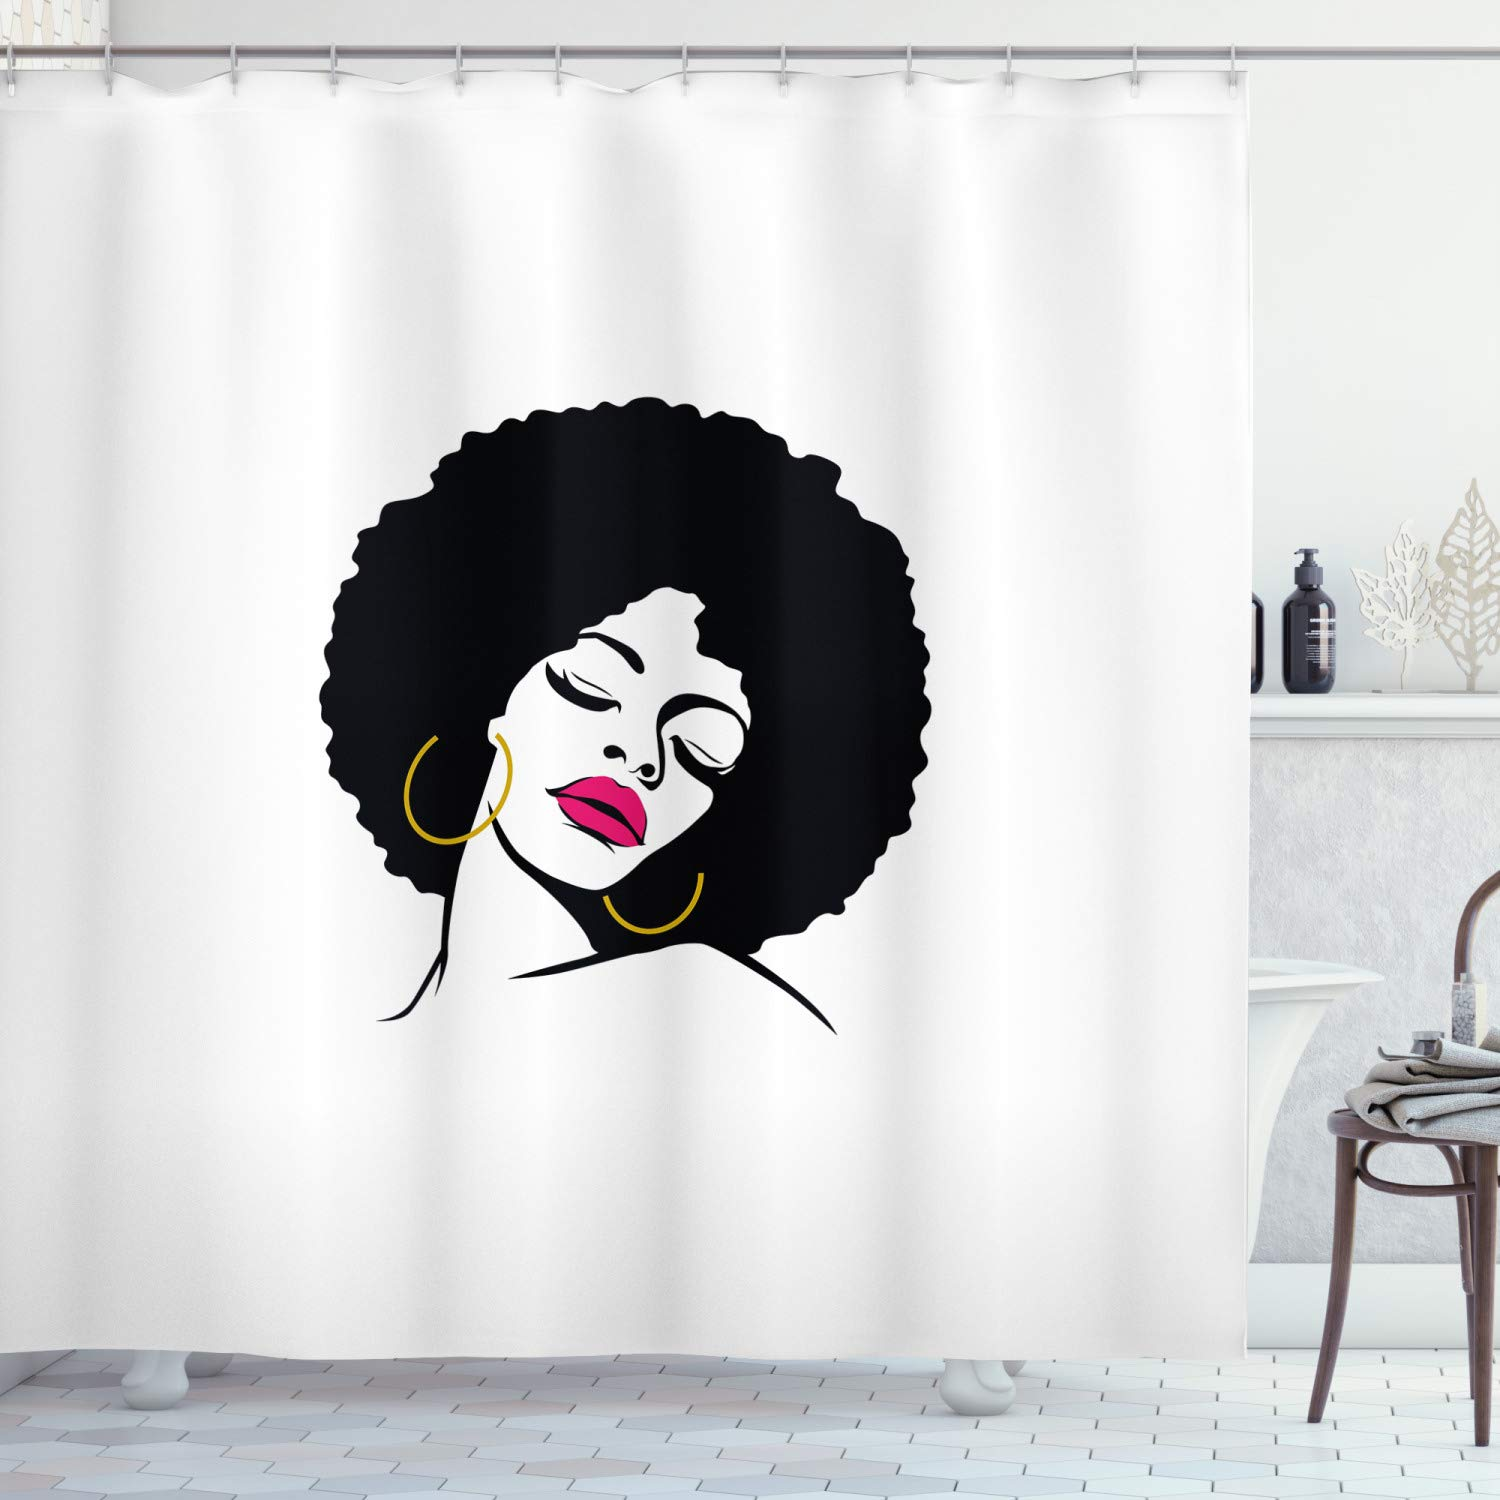 """Lunarable Black Woman Shower Curtain, Woman with Afro Hair Pop Art Drawing Funky Earrings and Lipstick, Cloth Fabric Bathroom Decor Set with Hooks, 75"""" Long, Yellow Black"""